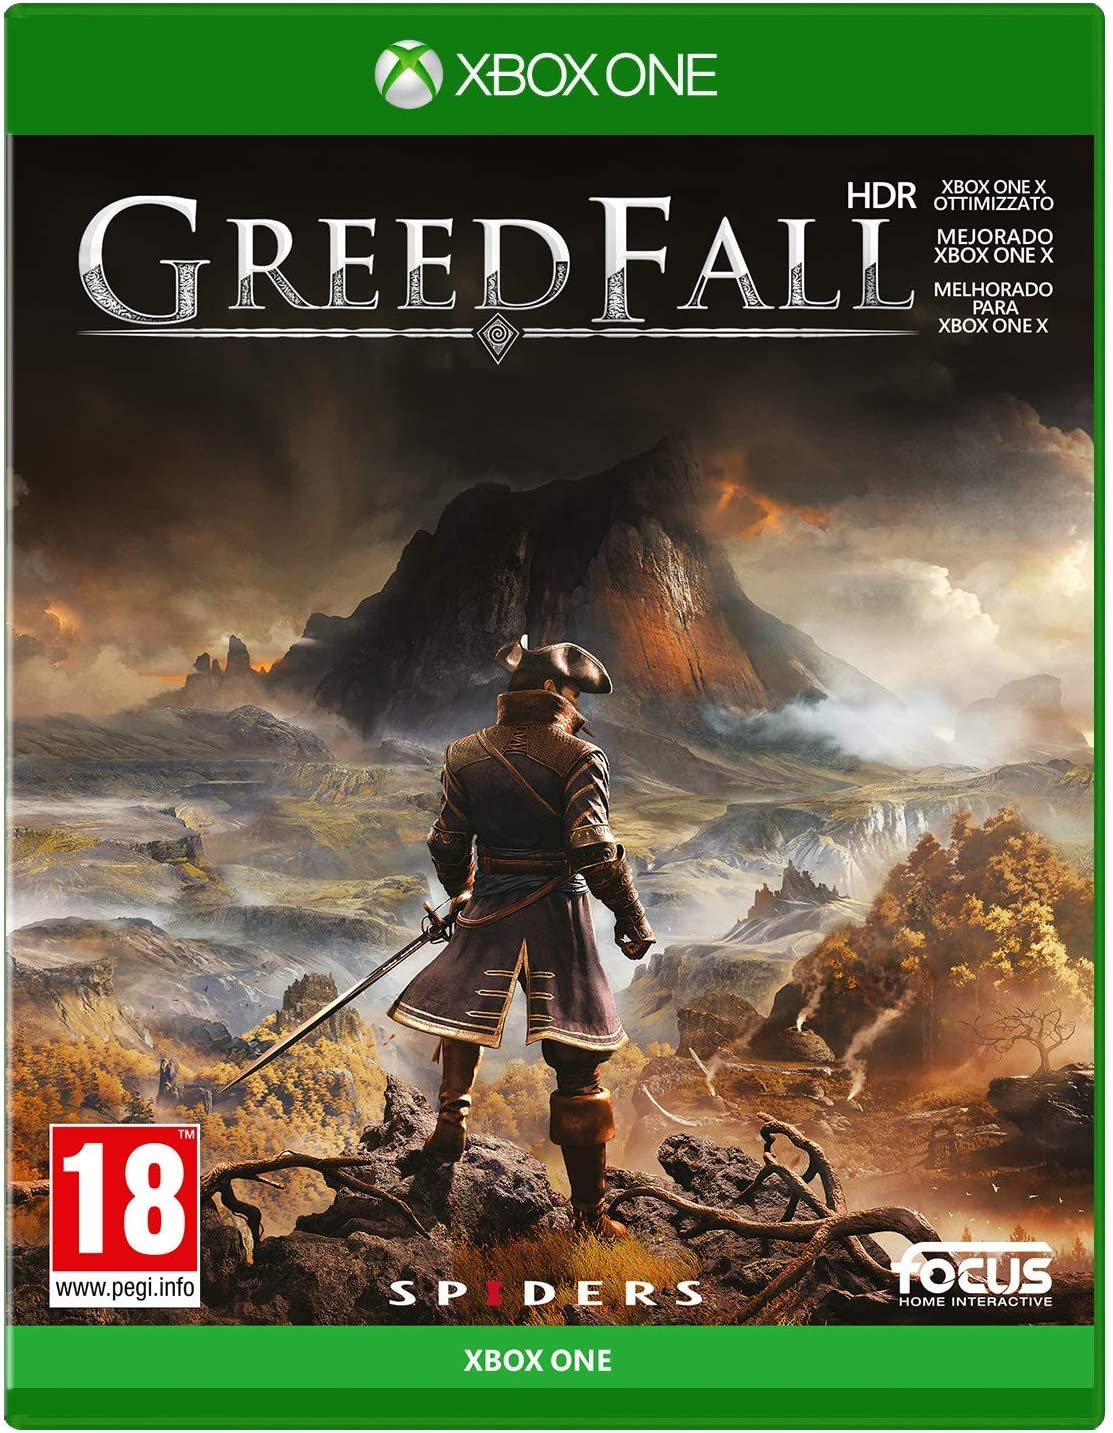 GreedFall - Xbox One: Amazon.es: Videojuegos